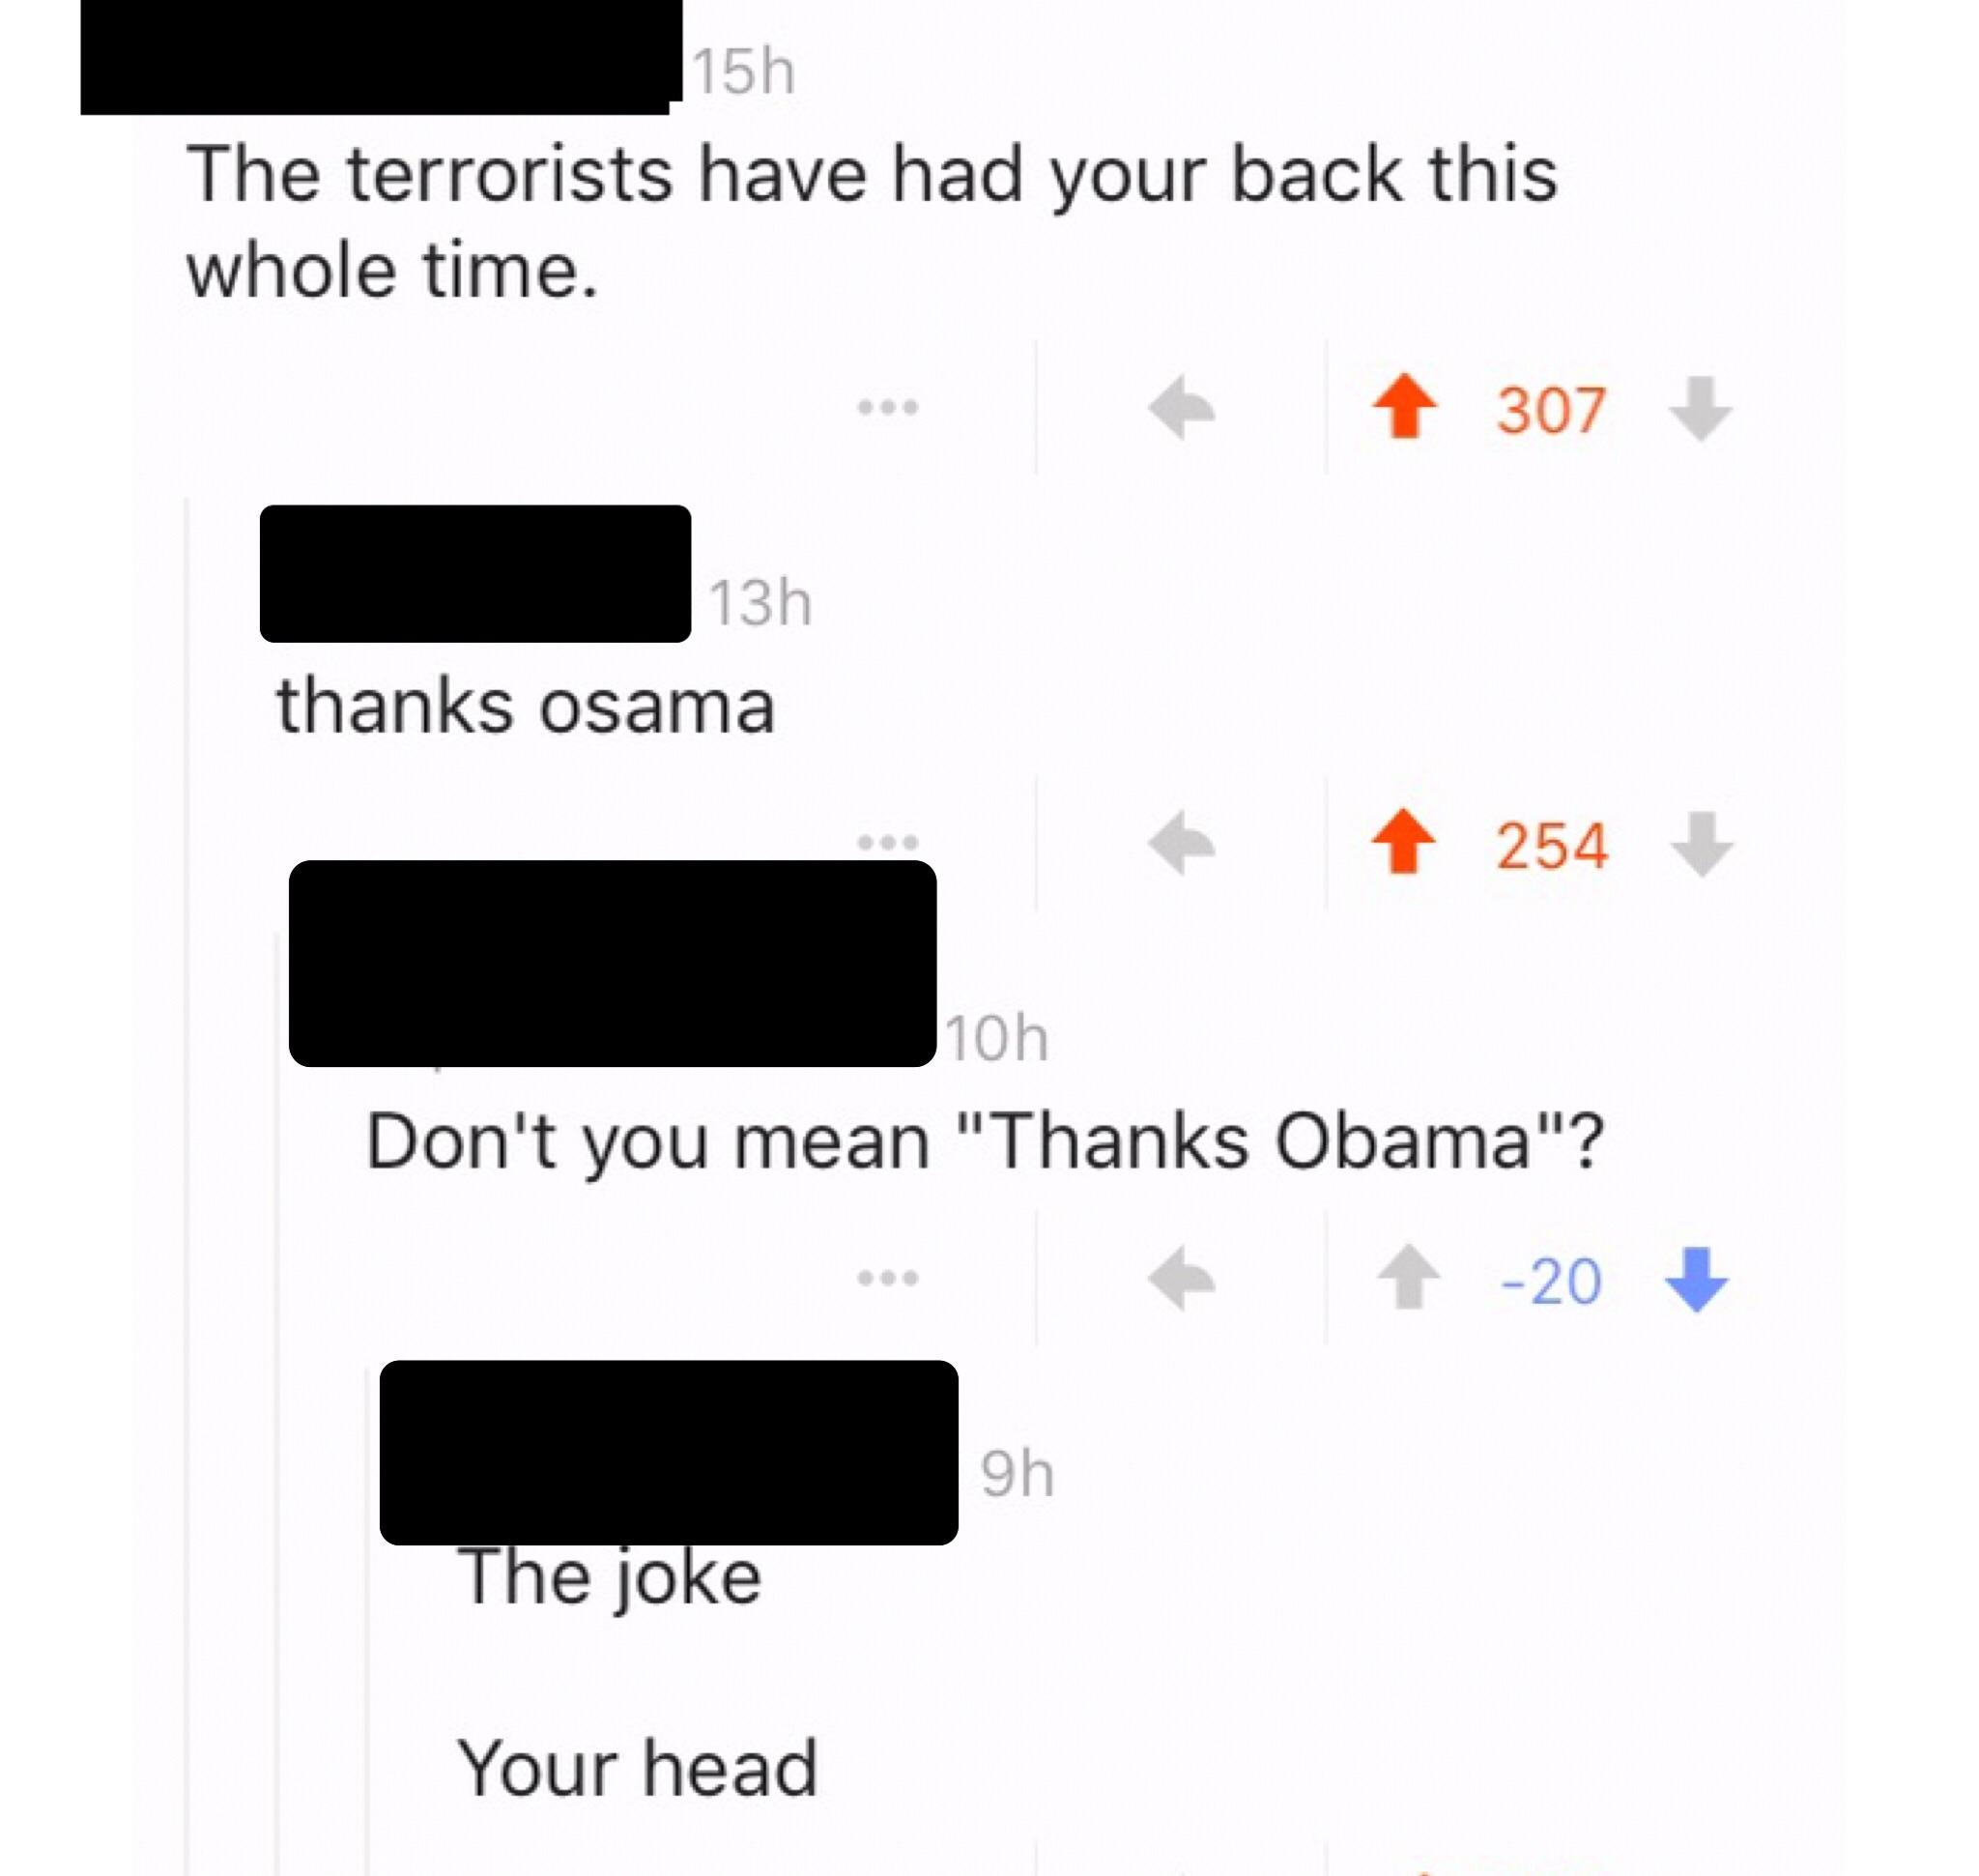 On a comment about using 9/11 to remember that September